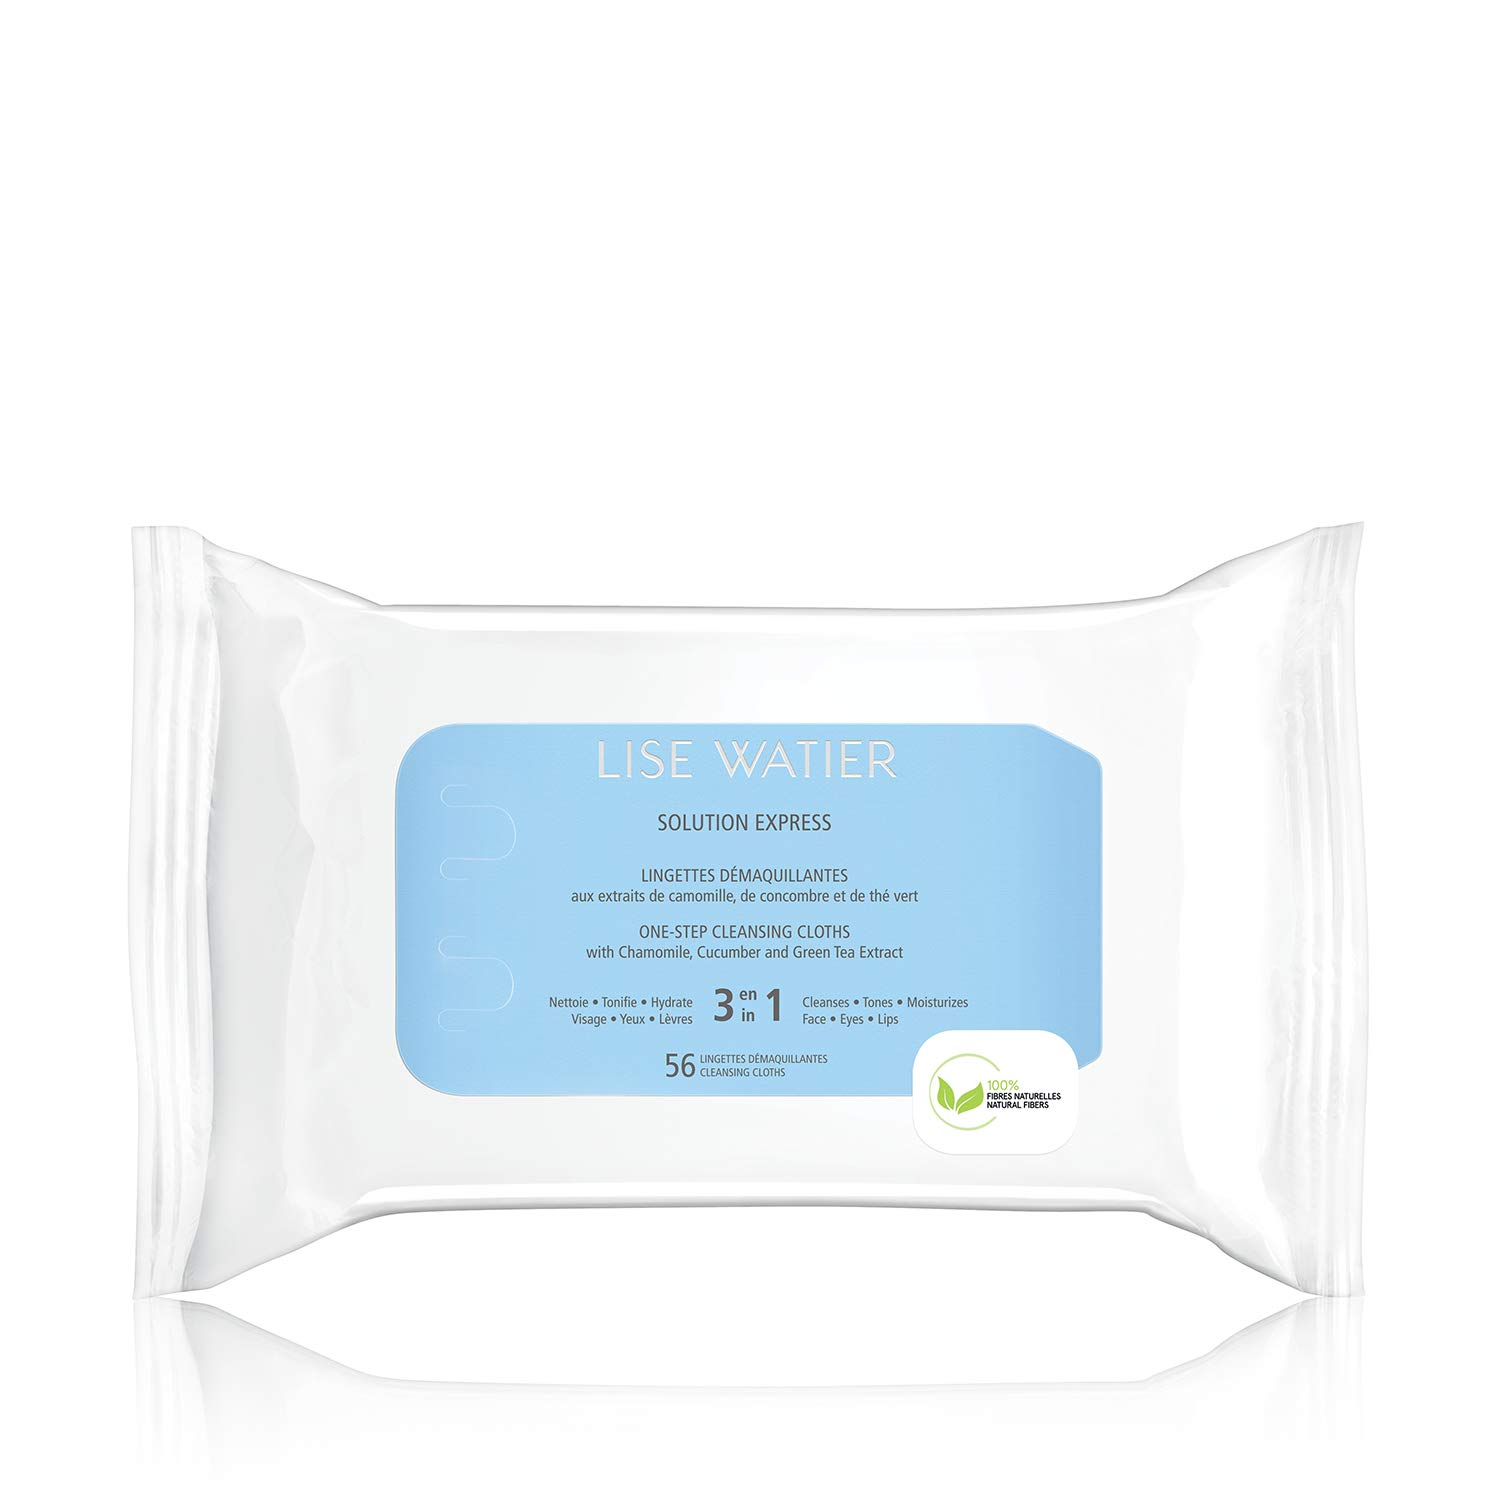 Lise Watier Solution Express One-Step Cleansing Cloths, 56 cloths